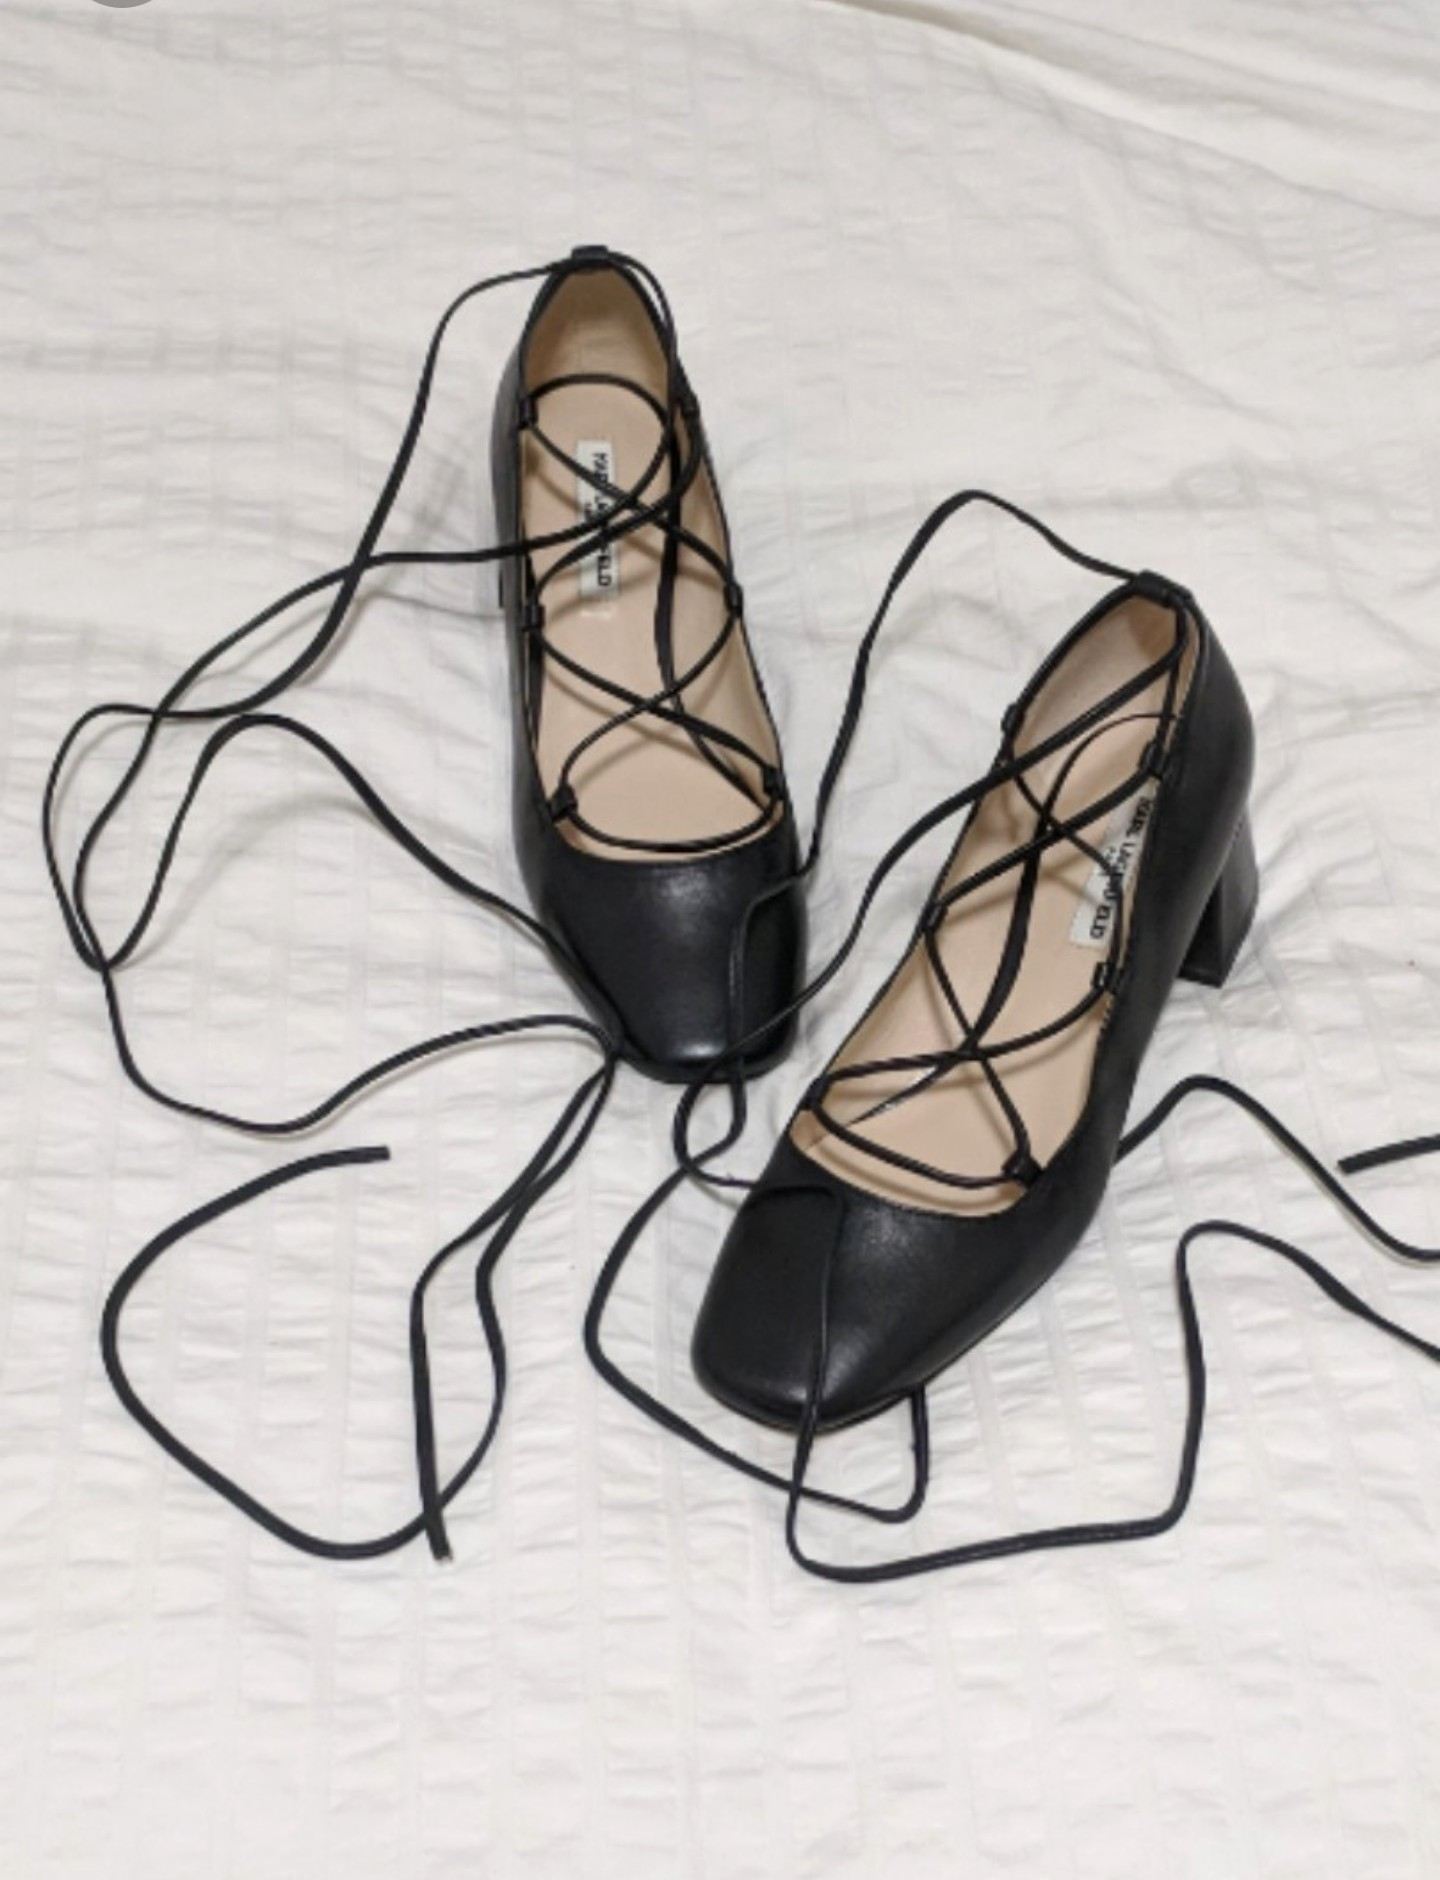 Karl Lagerfeld lace up heels